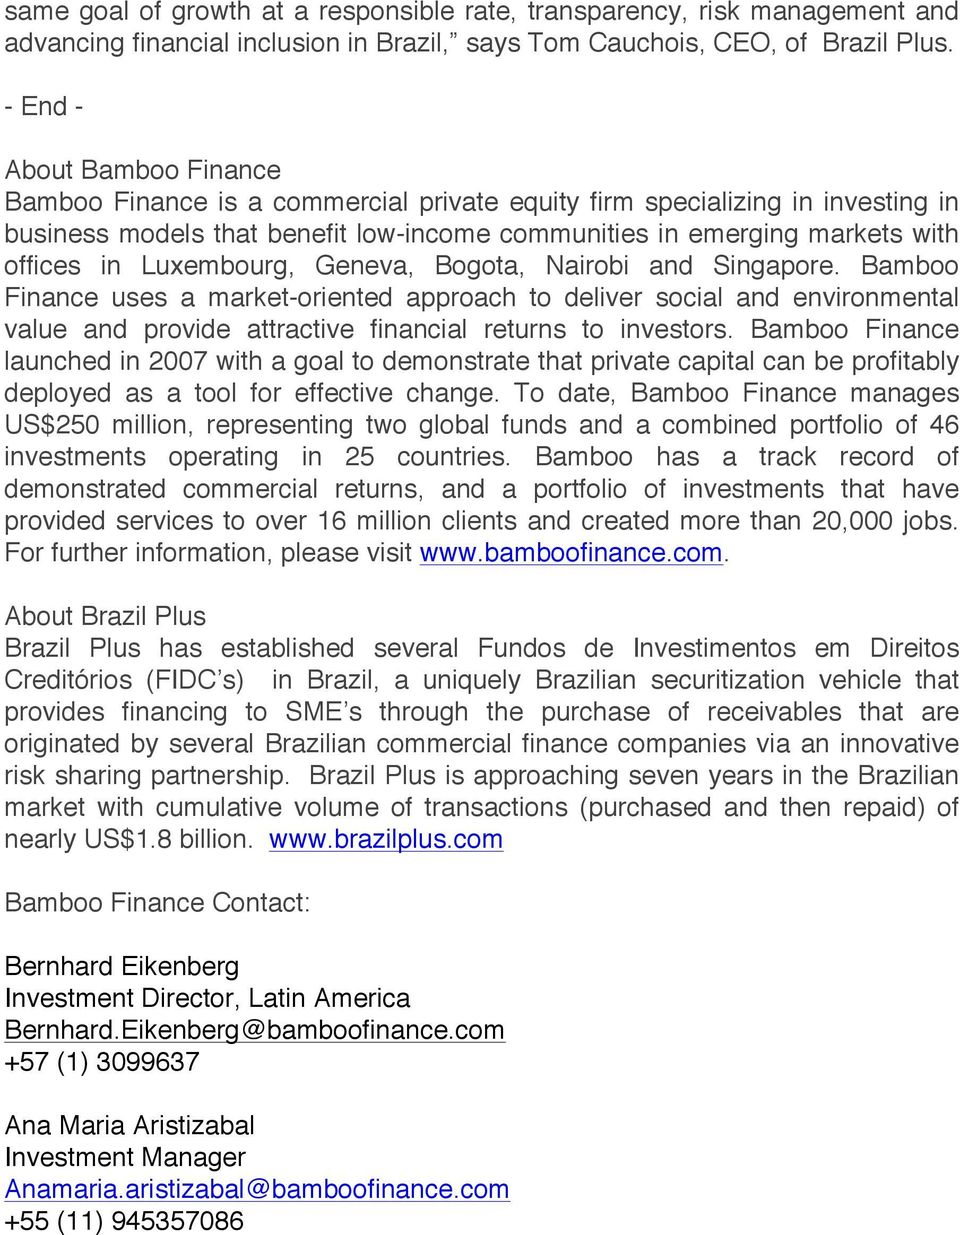 Luxembourg, Geneva, Bogota, Nairobi and Singapore. Bamboo Finance uses a market-oriented approach to deliver social and environmental value and provide attractive financial returns to investors.